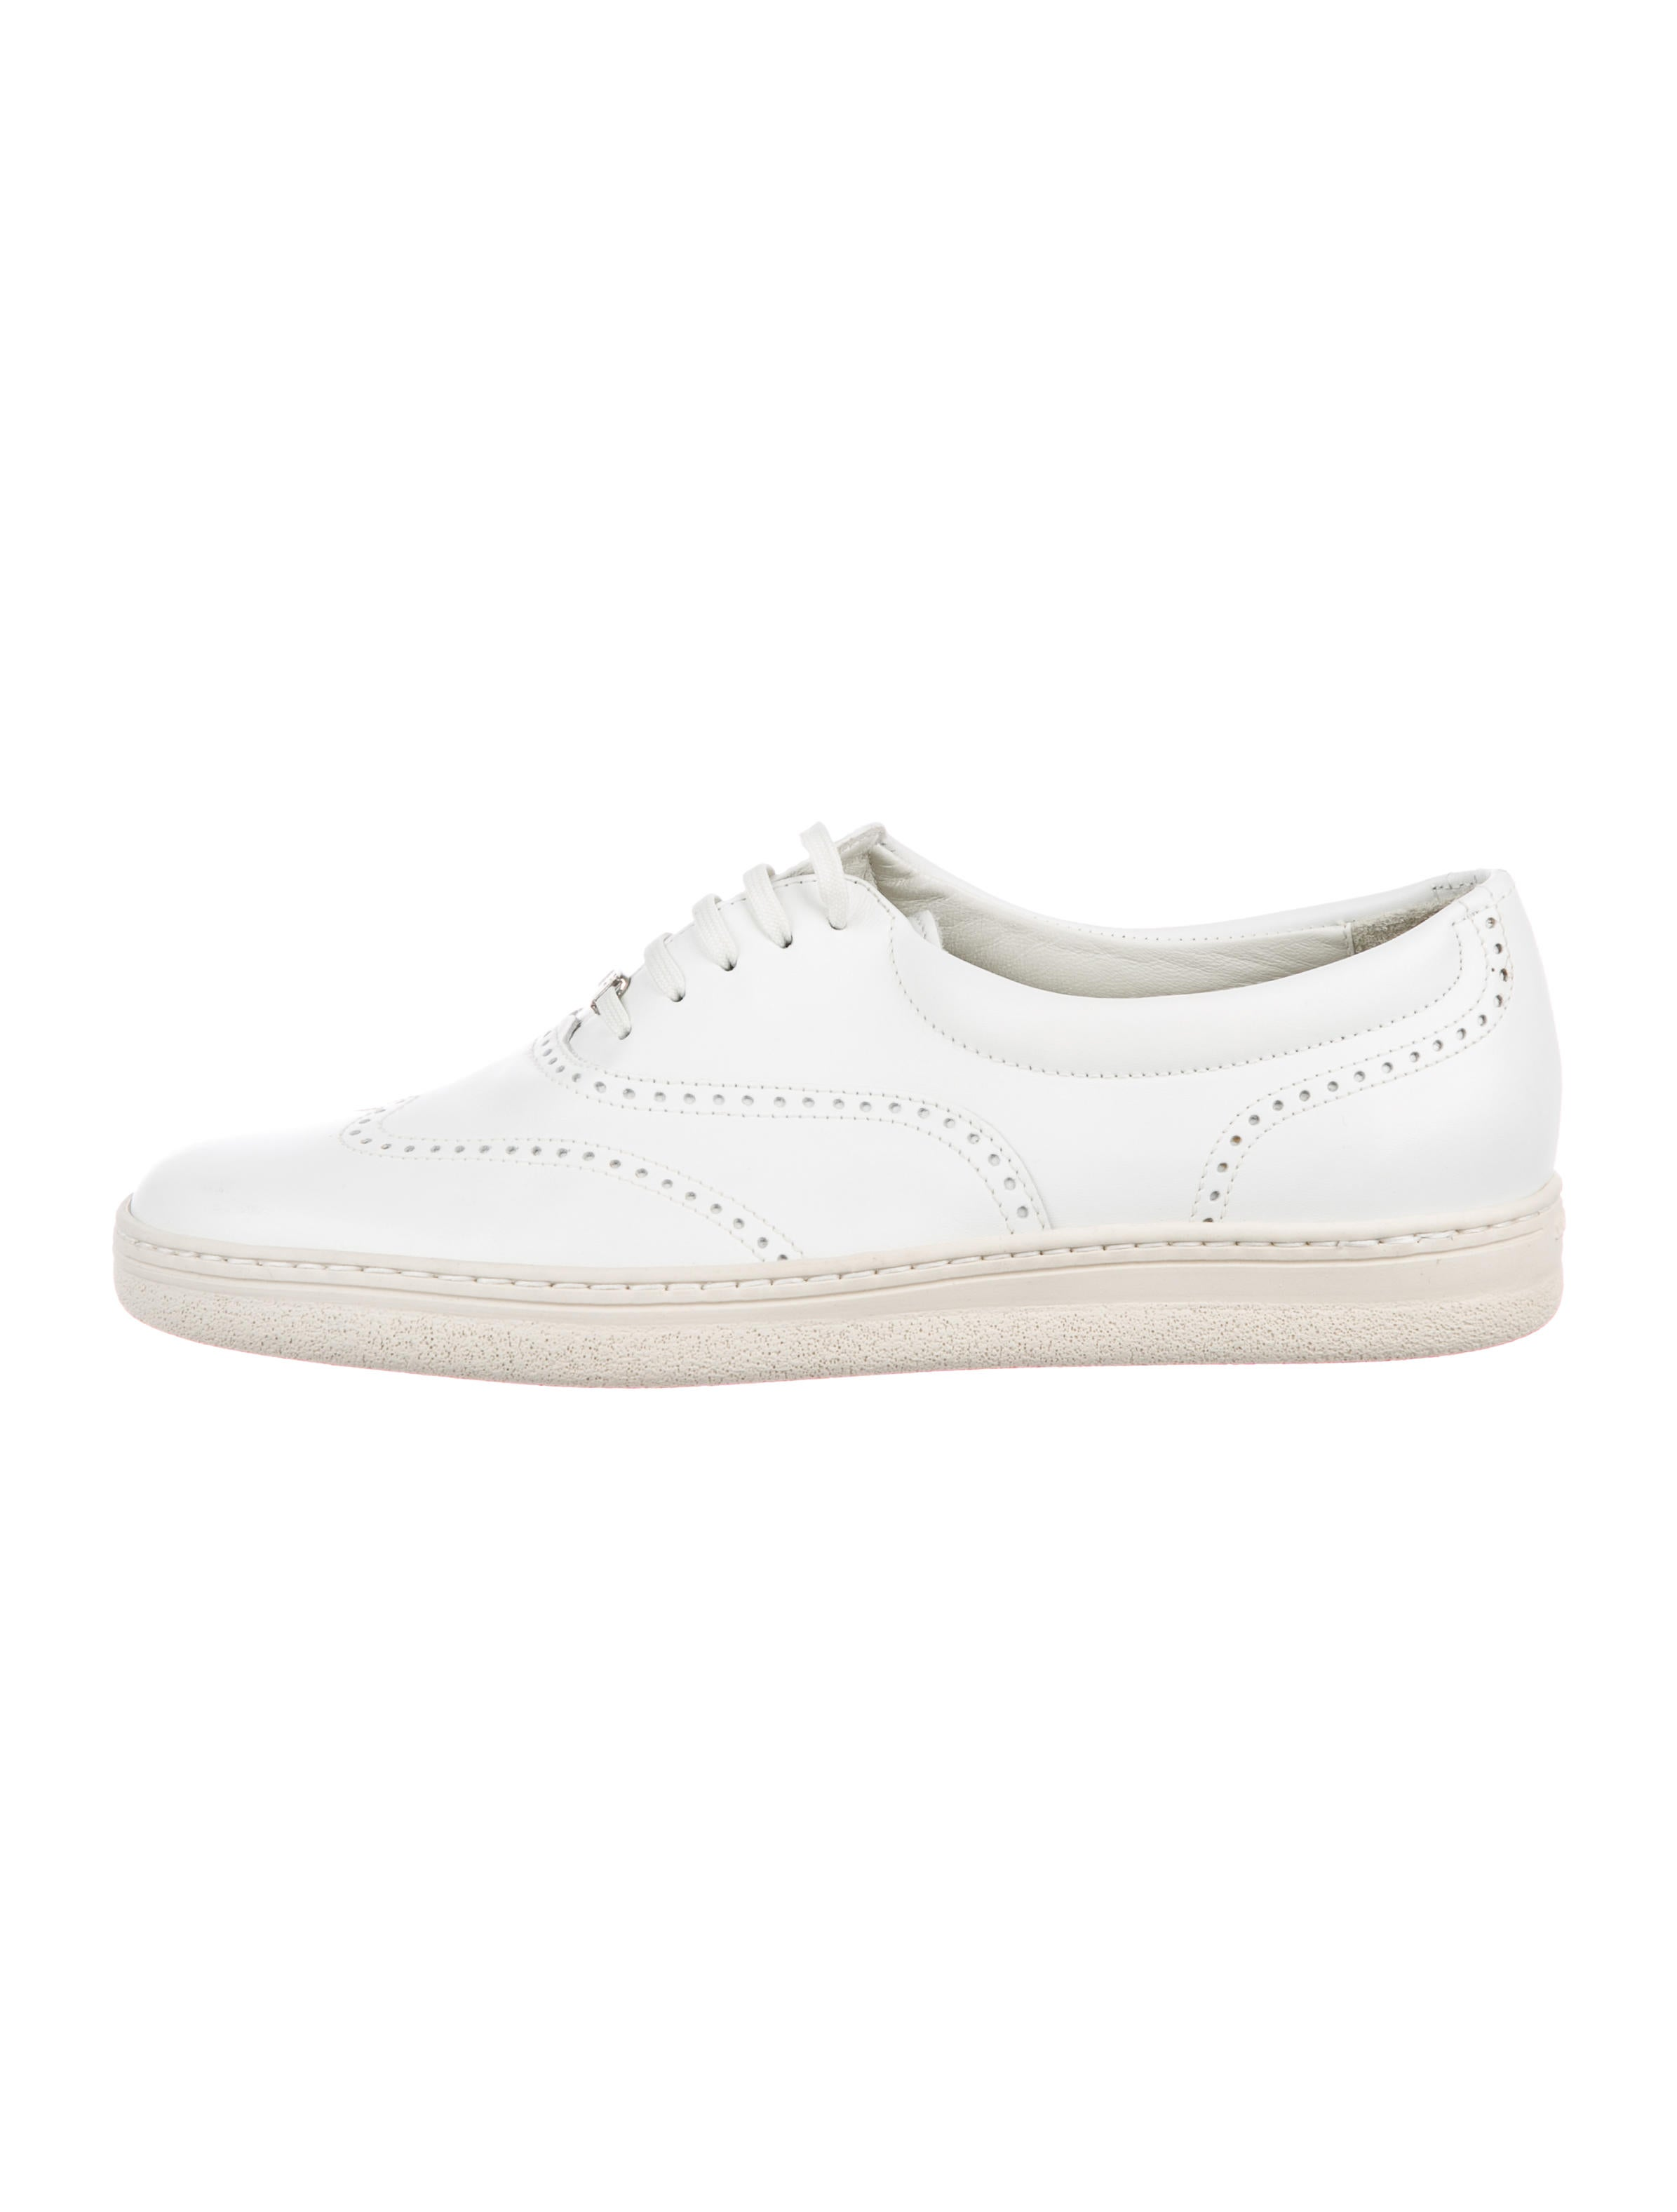 free shipping Manchester Salvatore Ferragamo Vicki Low-Top Sneakers w/ Tags cheap looking for cheap sale professional discount countdown package qff9G